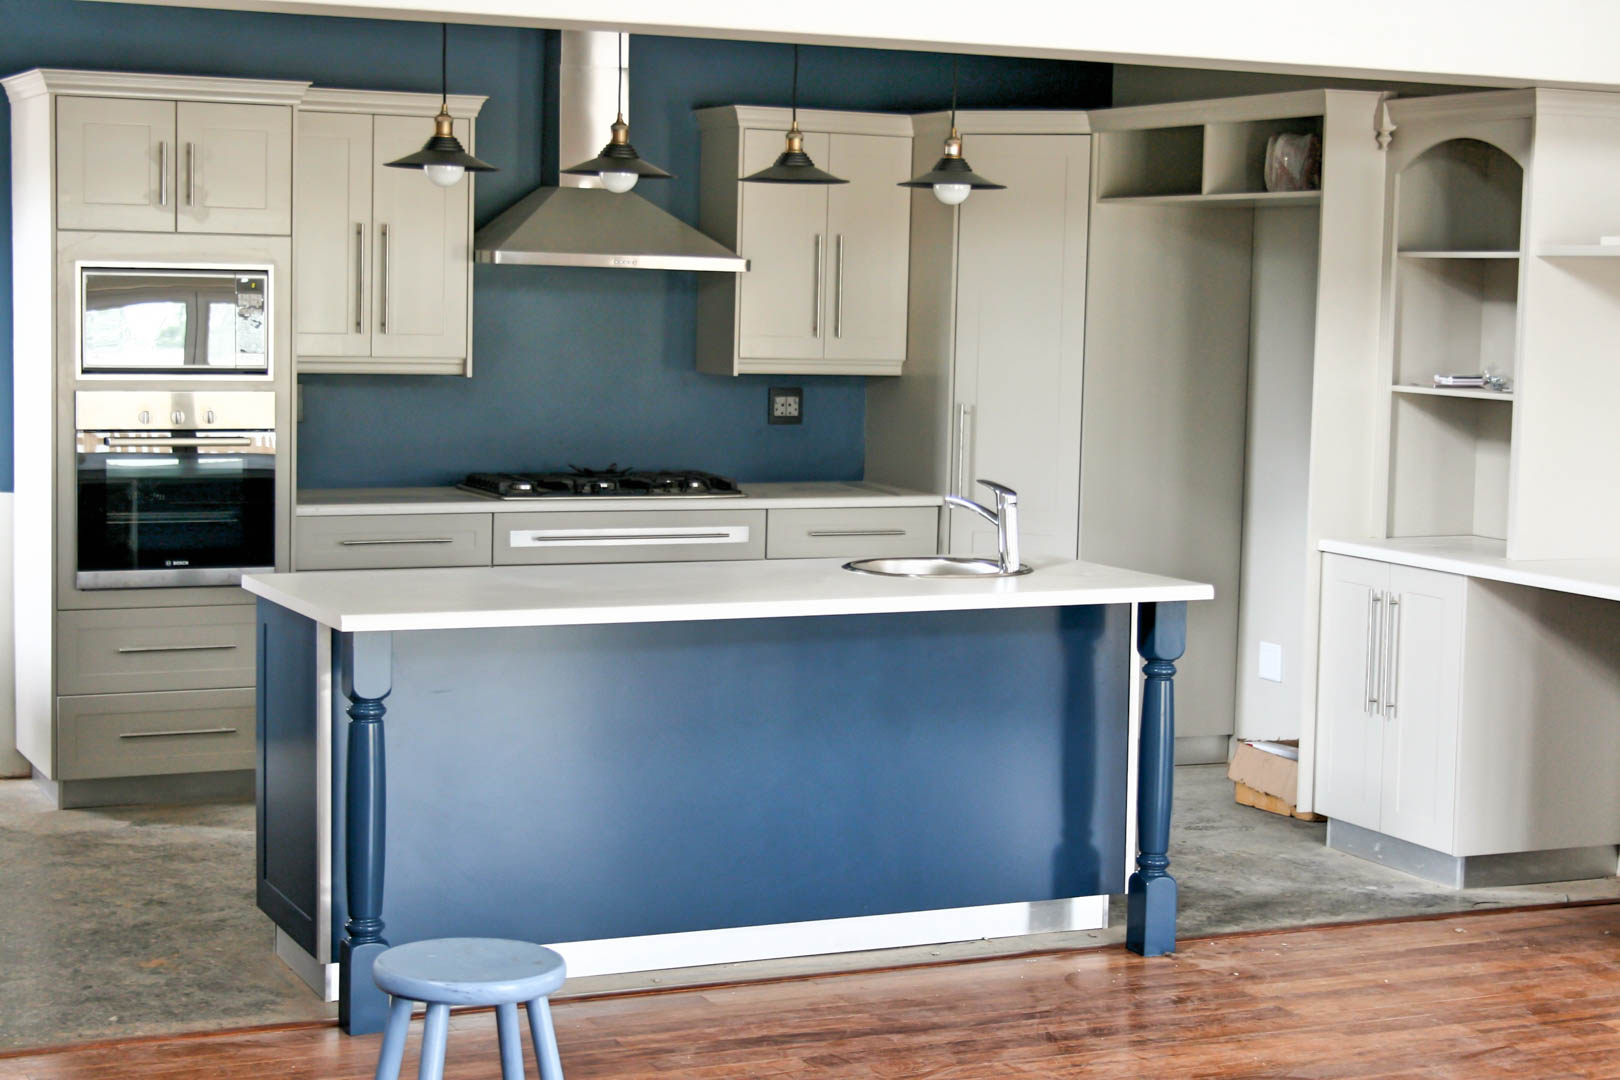 Gareth Evans Kitchens – Custom kitchen design, manufacture ...